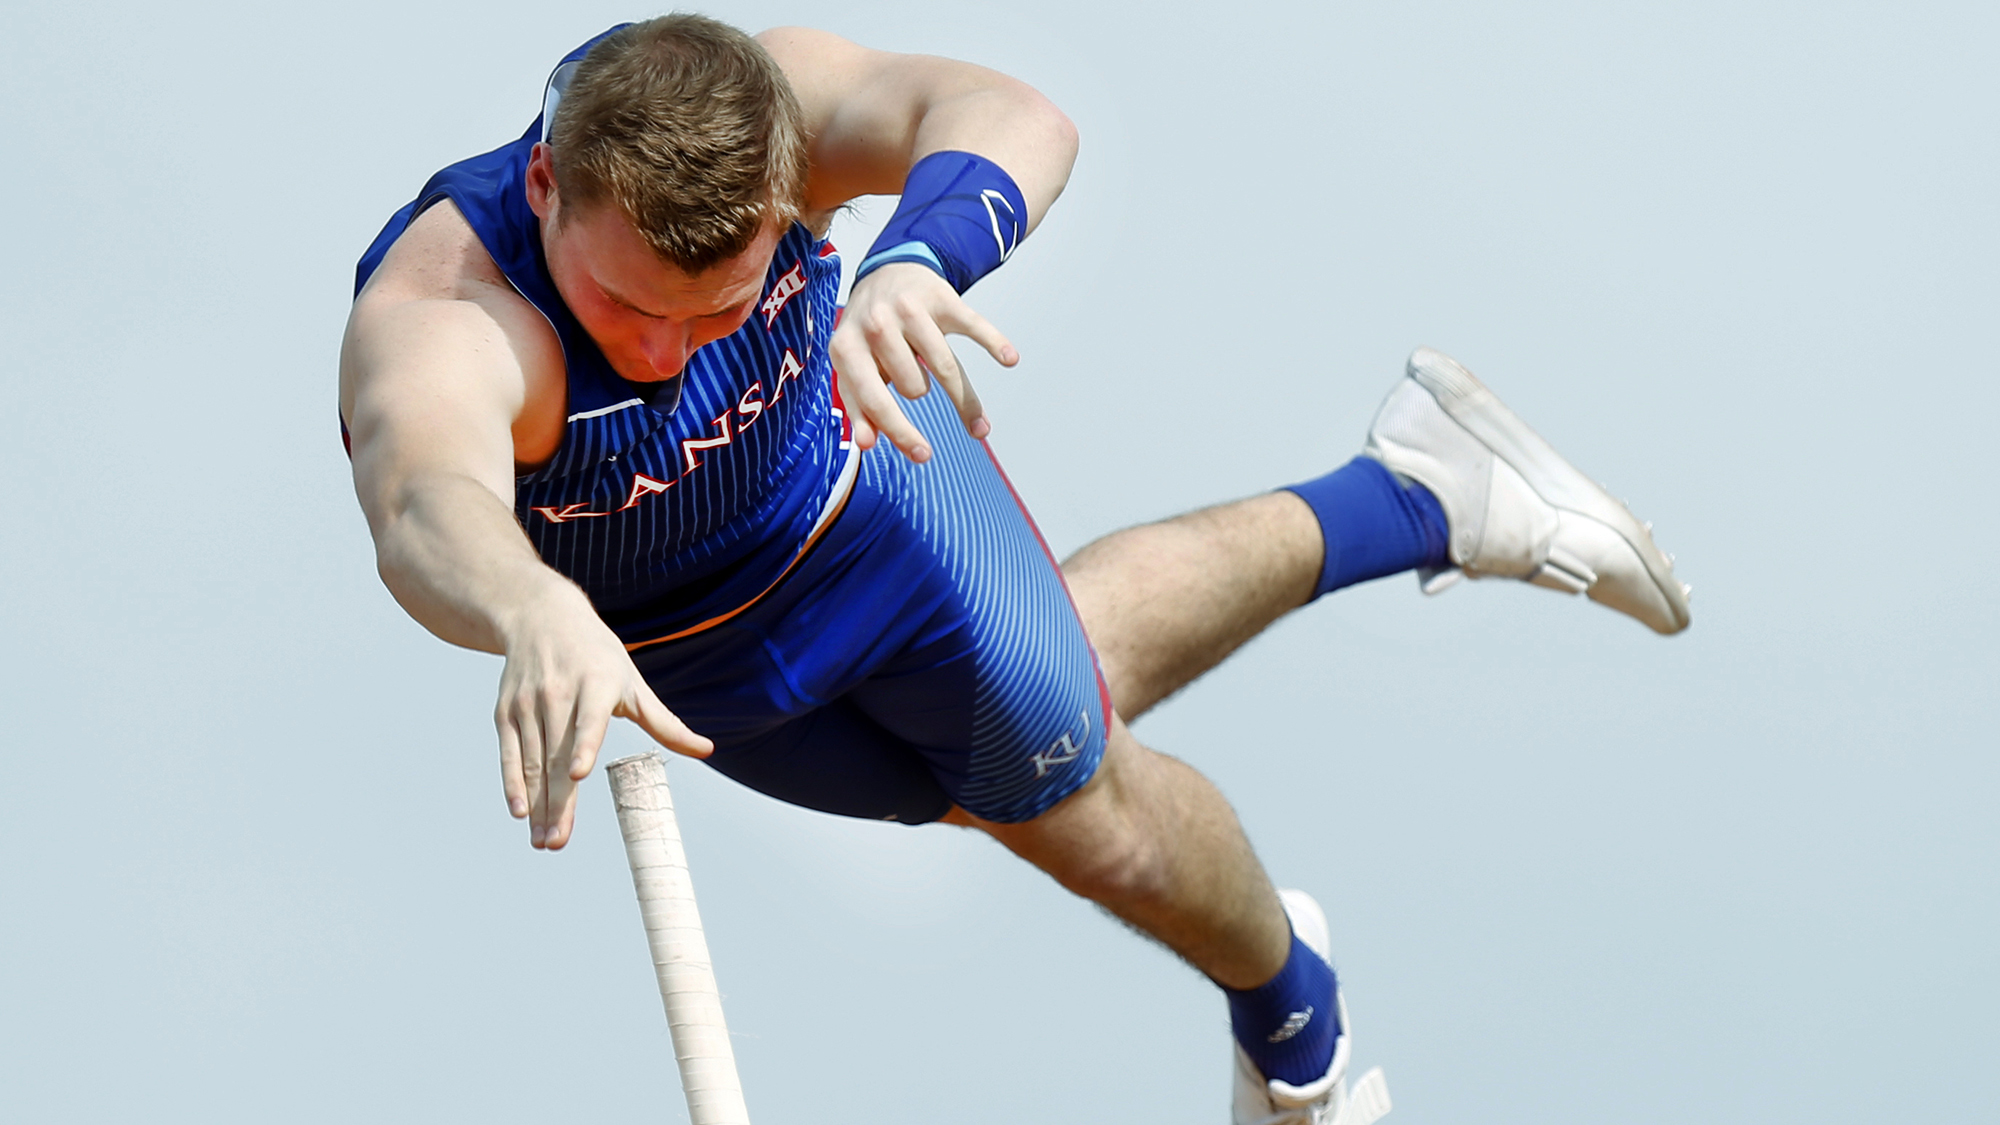 eb48b17017be Chase Pennewell - Track   Field - University of Kansas Athletics